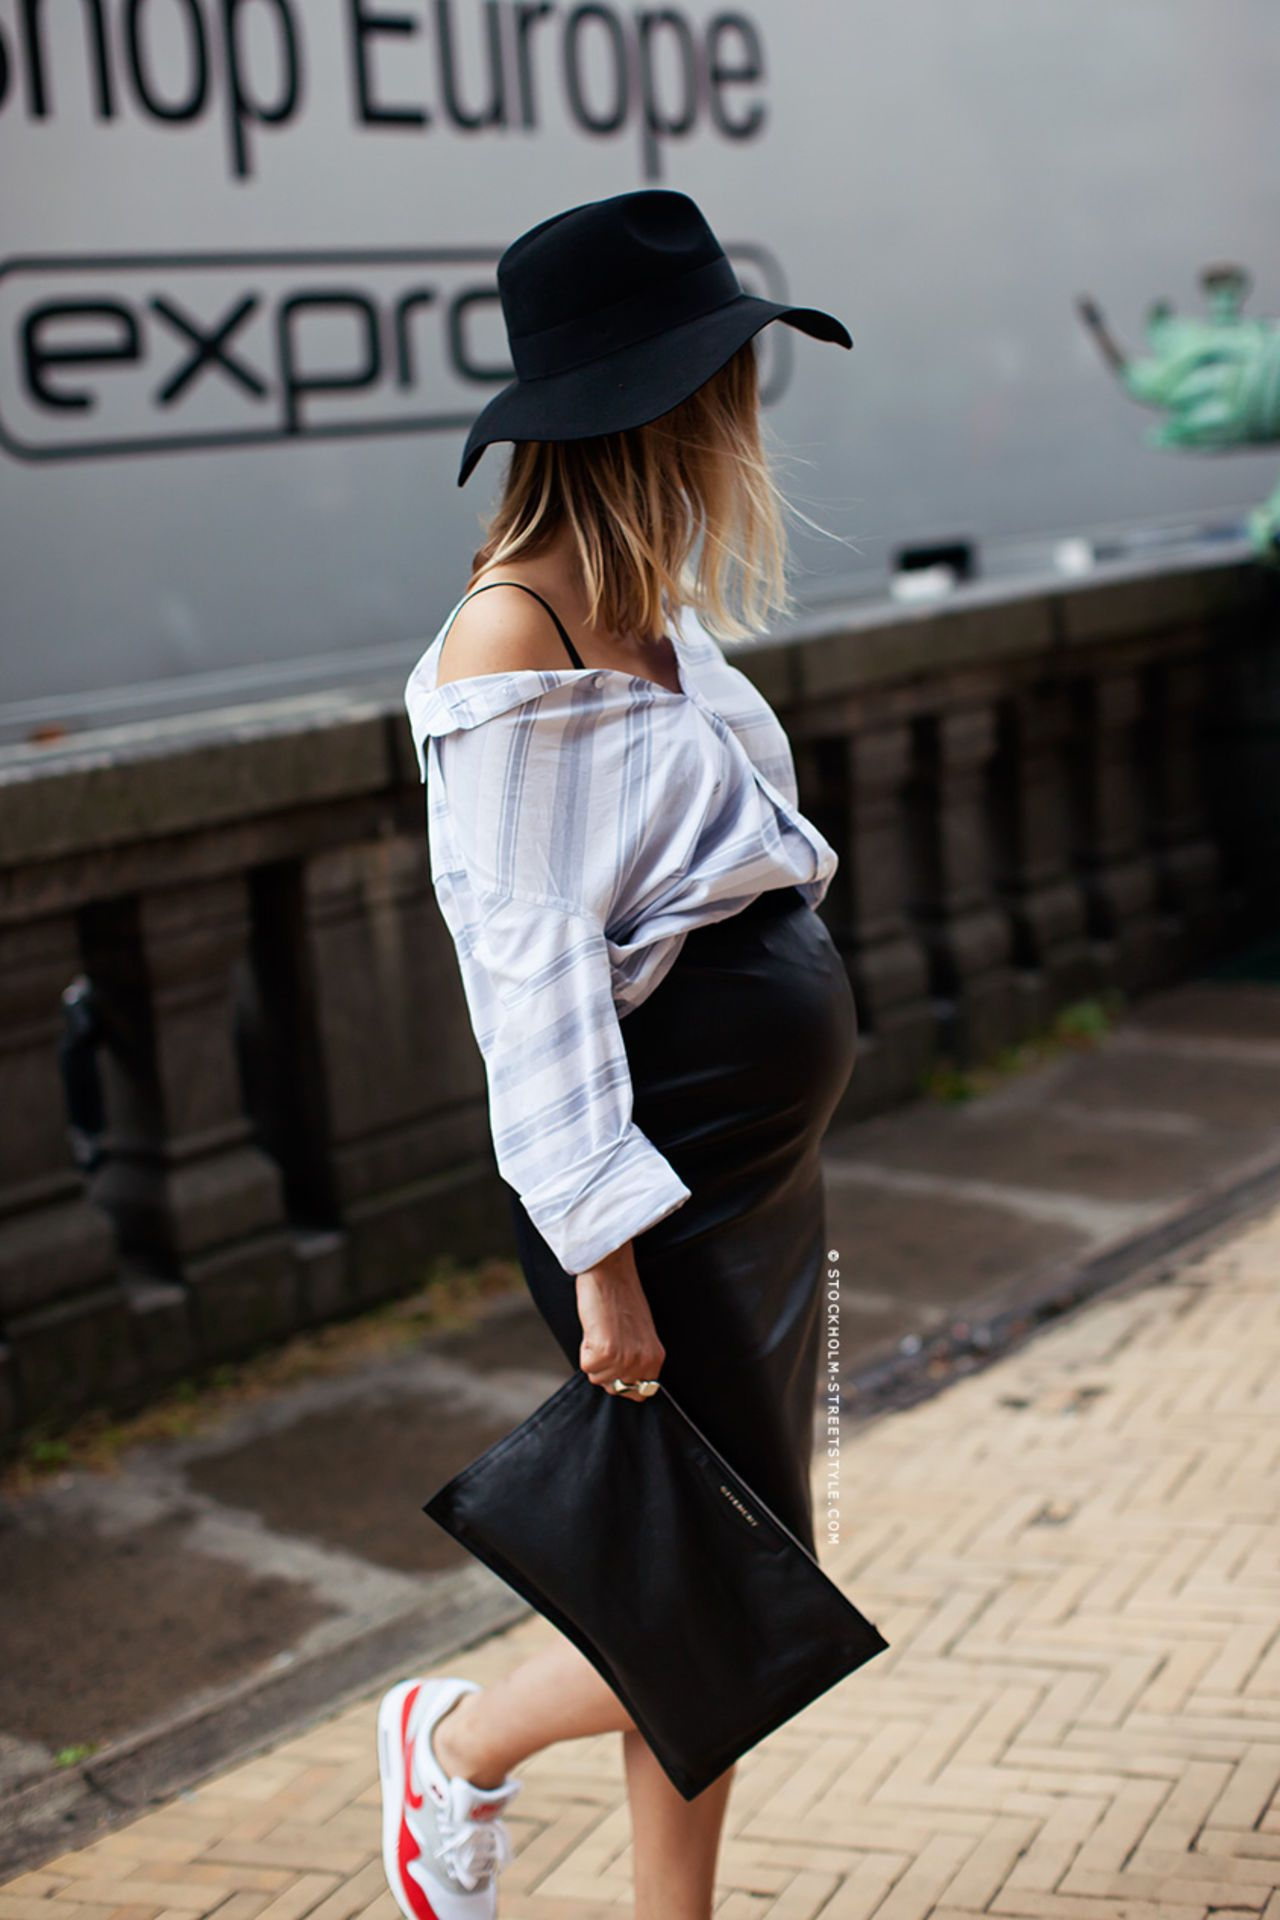 Amazing cool street style #maternitystyle #pregnancy #momstyle #mamastyle #fashion #pregnancylook Visit our website www.circu.net